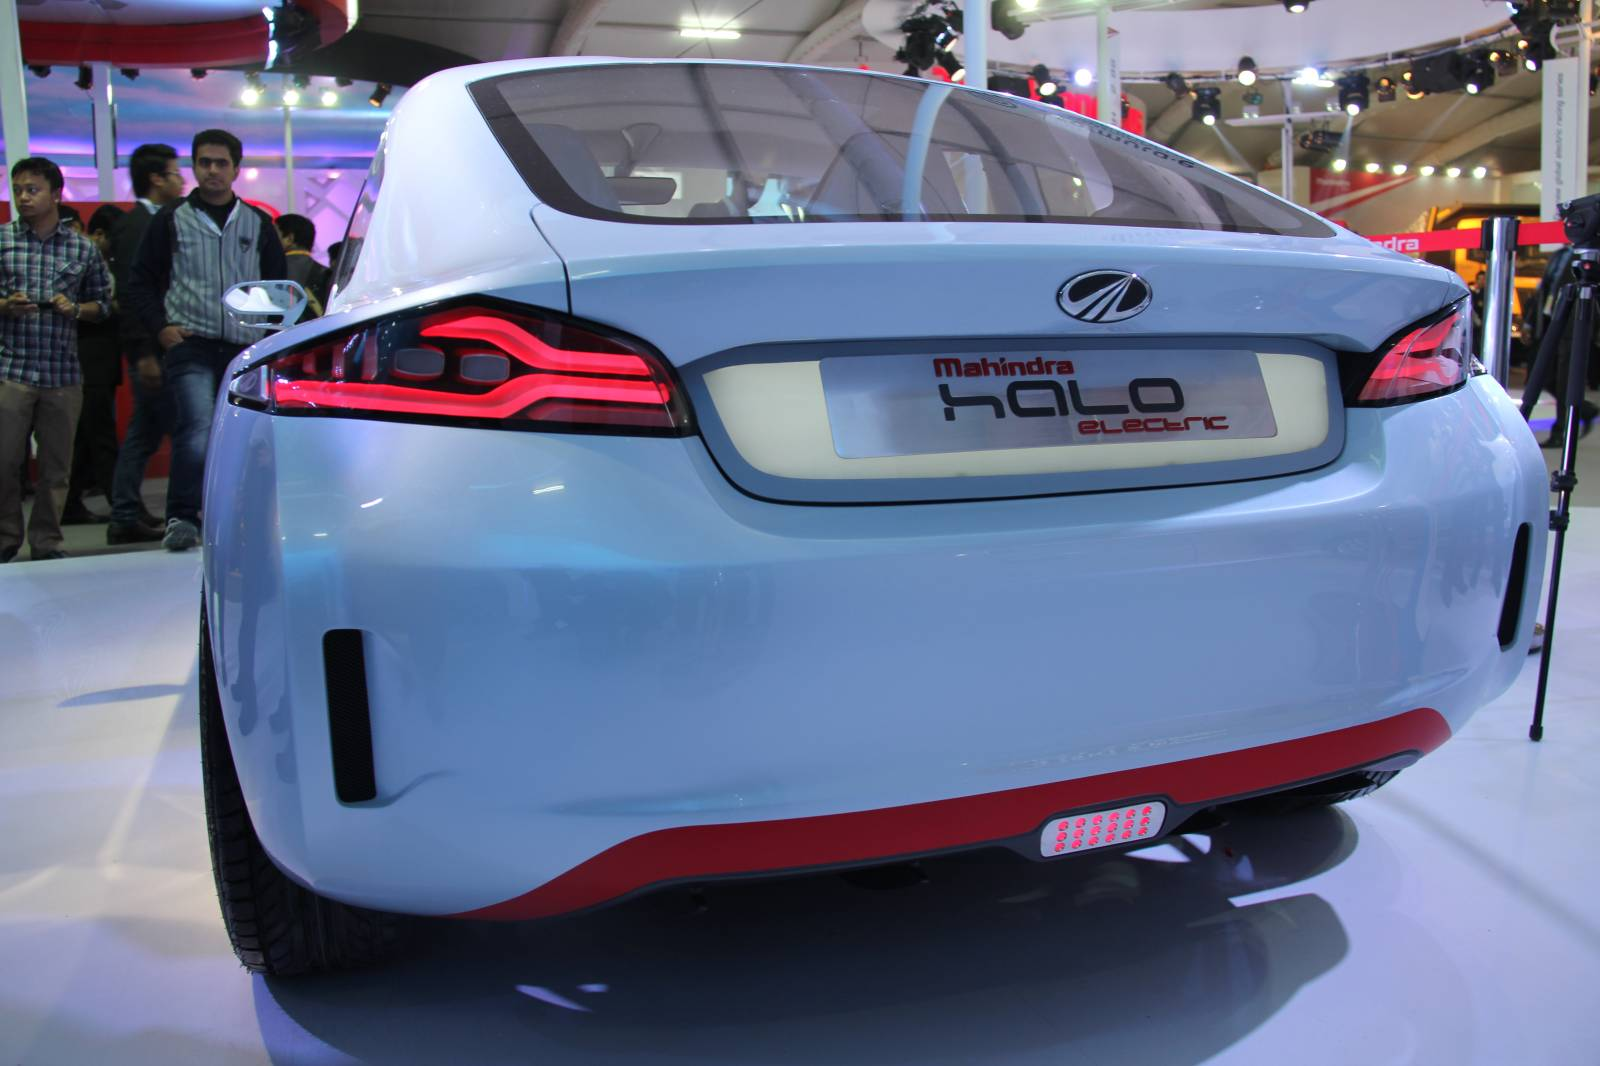 Mahindra Reva Halo Is A Little Electric Sportscar In India